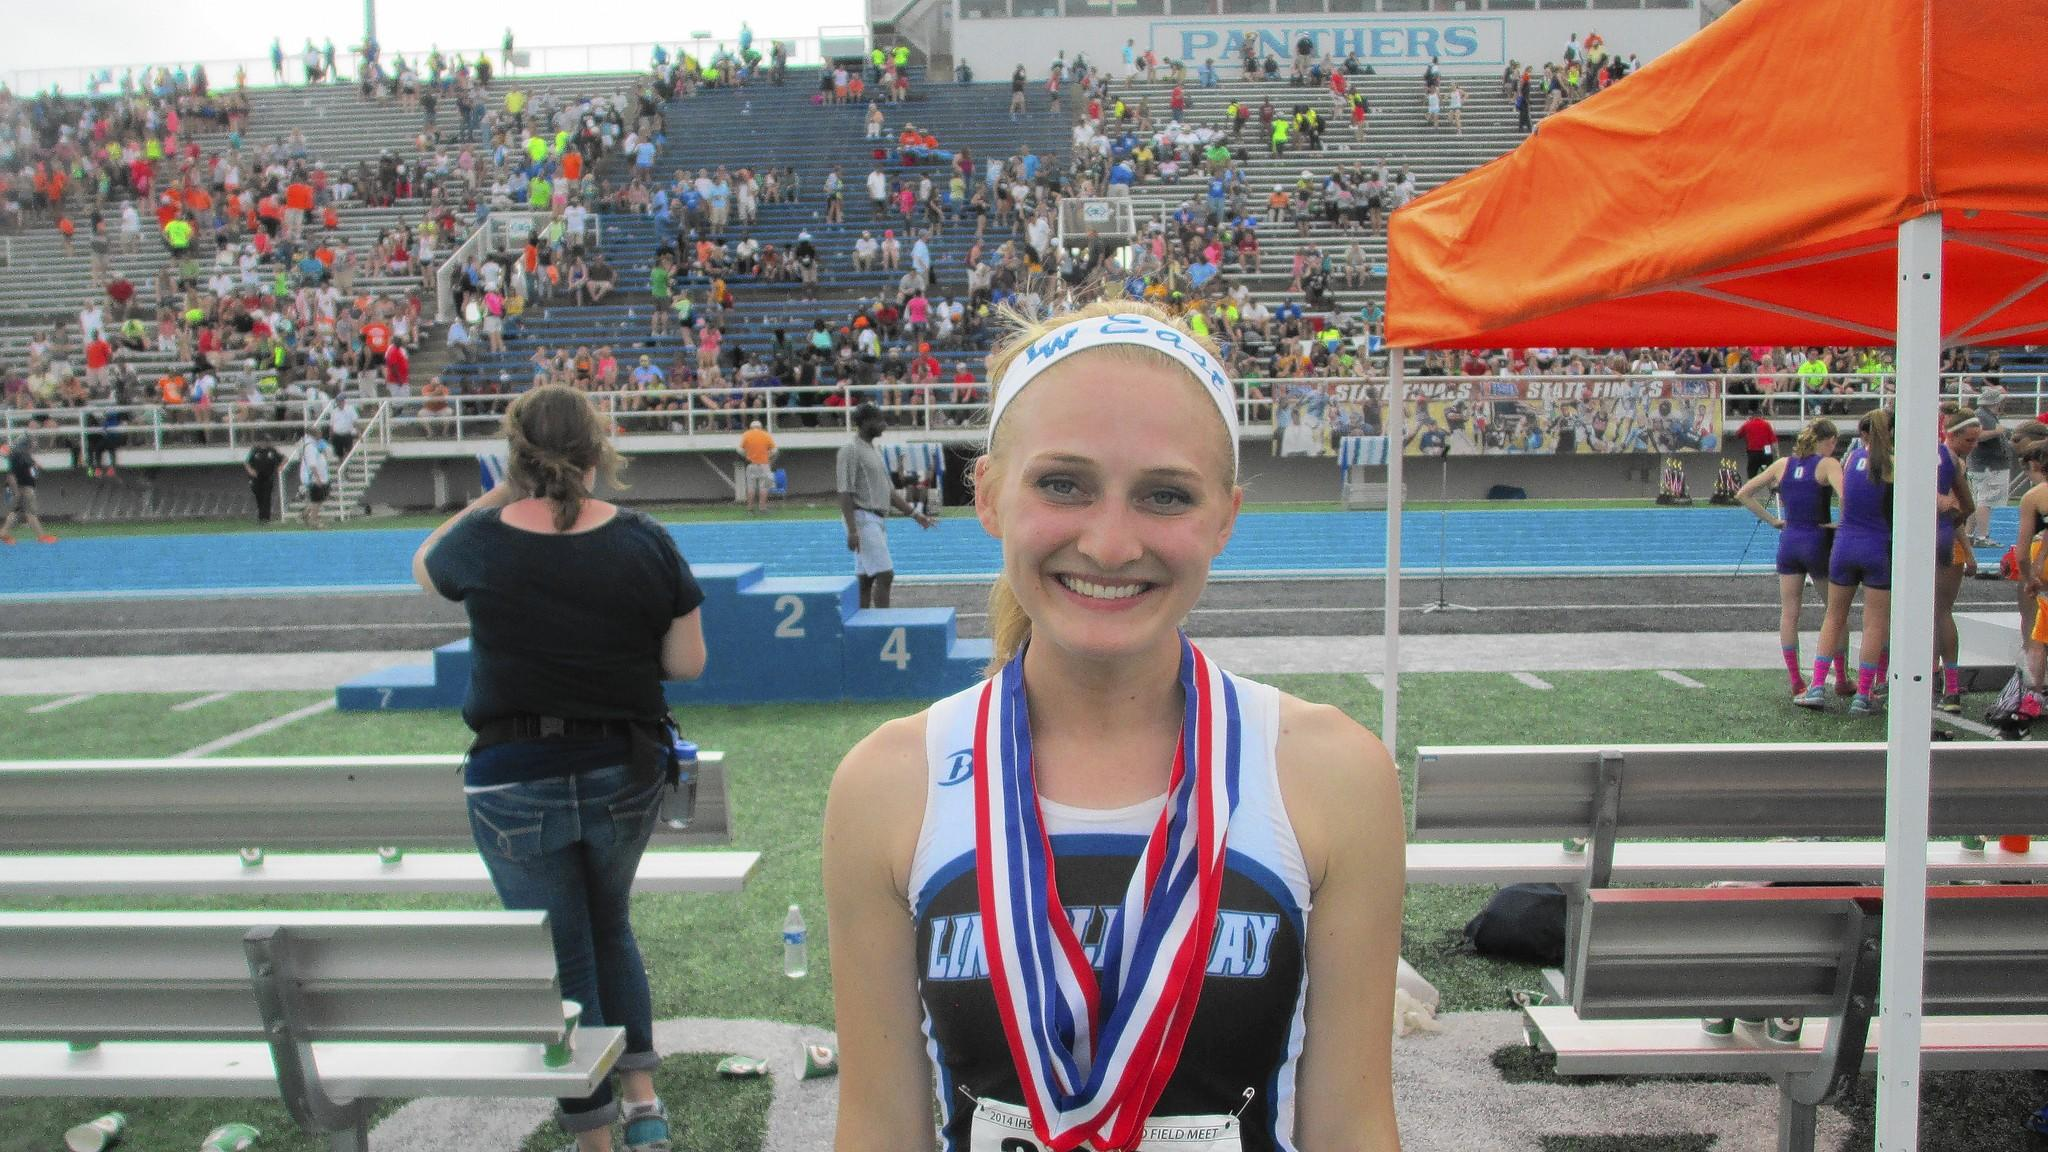 Meghan Marias was a central figure in the Lincoln-Way East Griffins' running away with their second consecutive team championship.